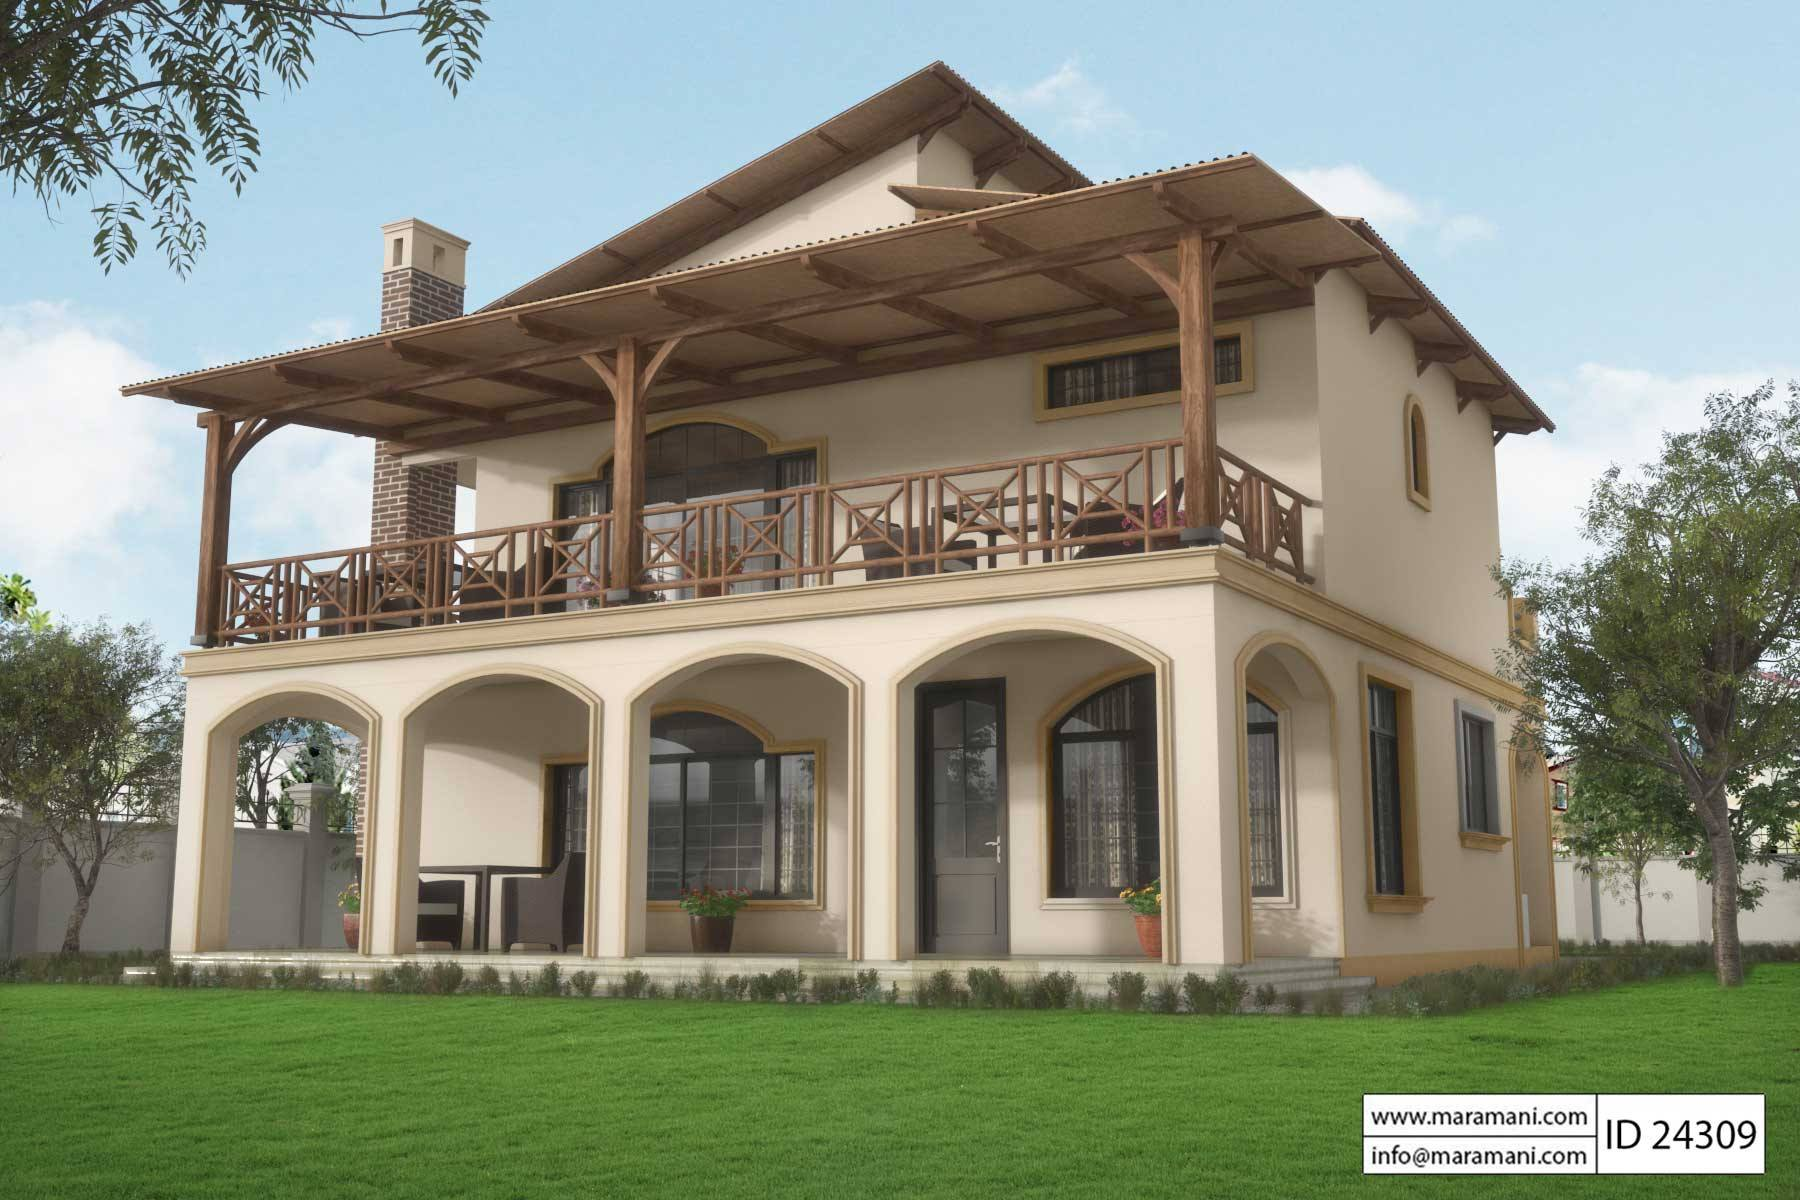 4 bedroom house plan id 24309 house plans by maramani for Idaho house plans